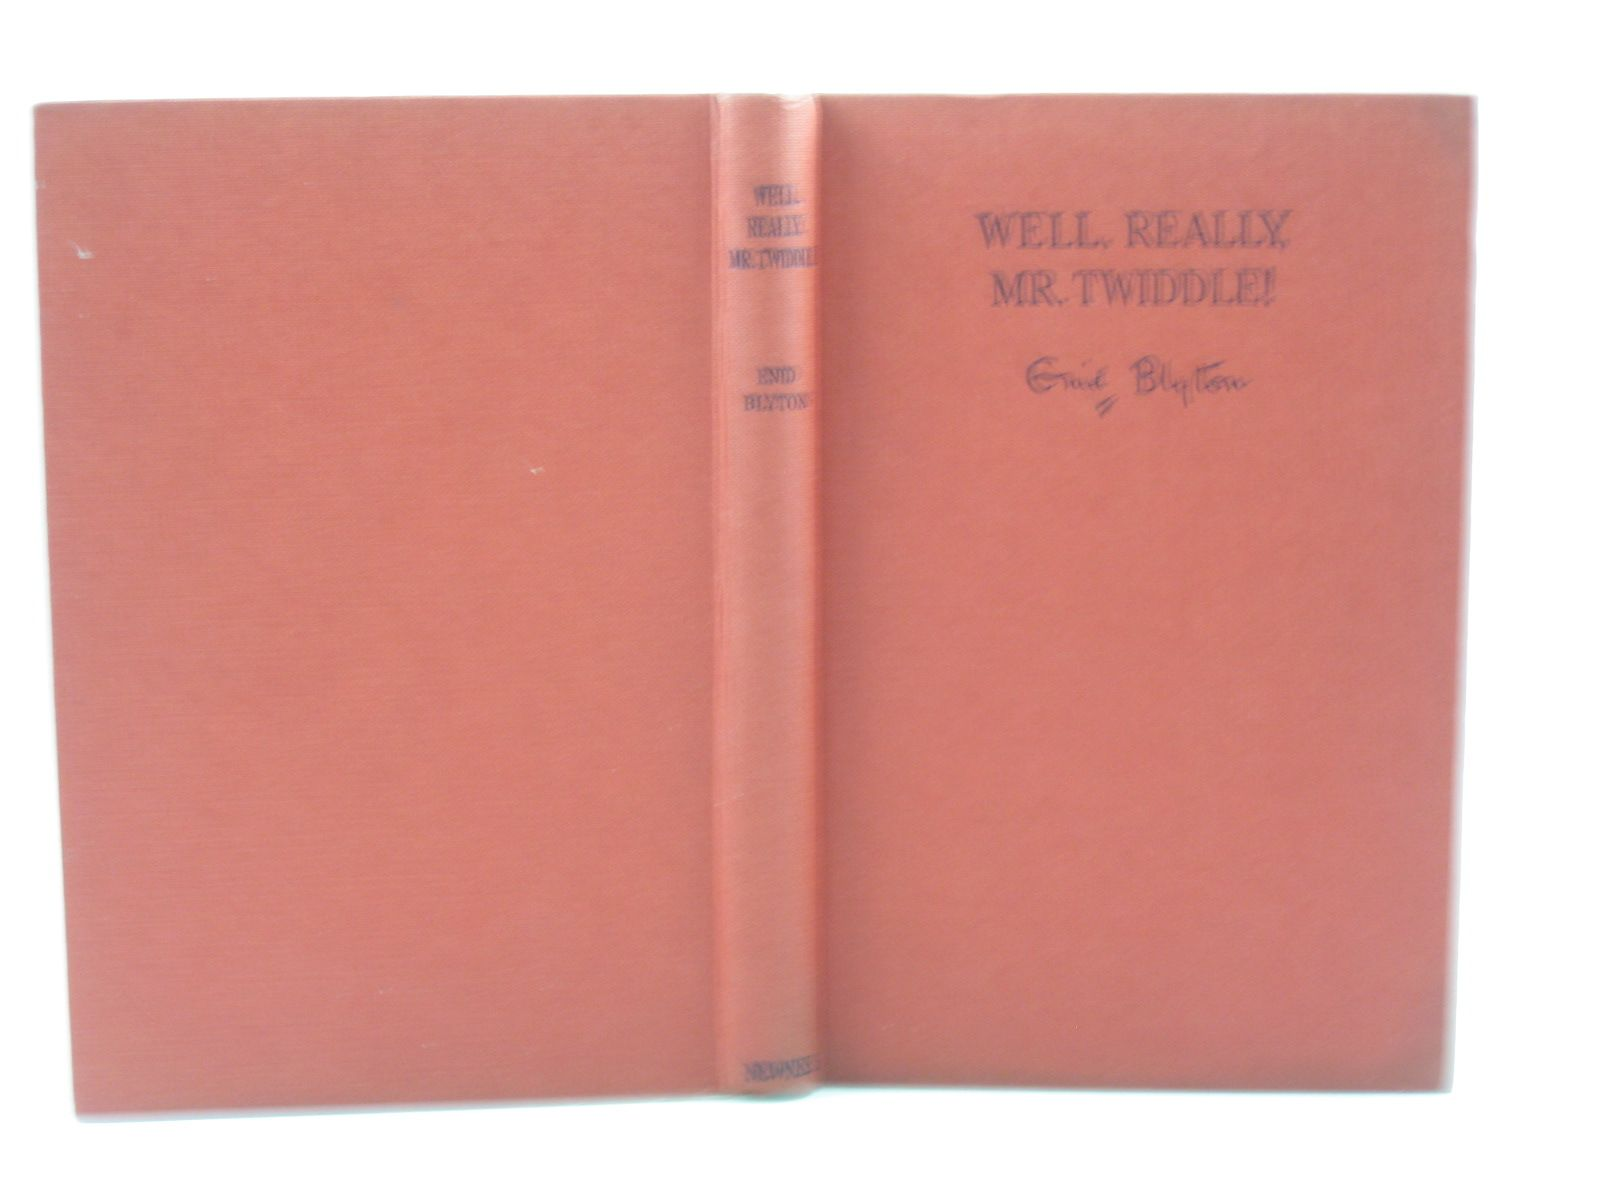 Photo of WELL, REALLY, MR. TWIDDLE! written by Blyton, Enid illustrated by McGavin, Hilda published by George Newnes Limited (STOCK CODE: 1313485)  for sale by Stella & Rose's Books